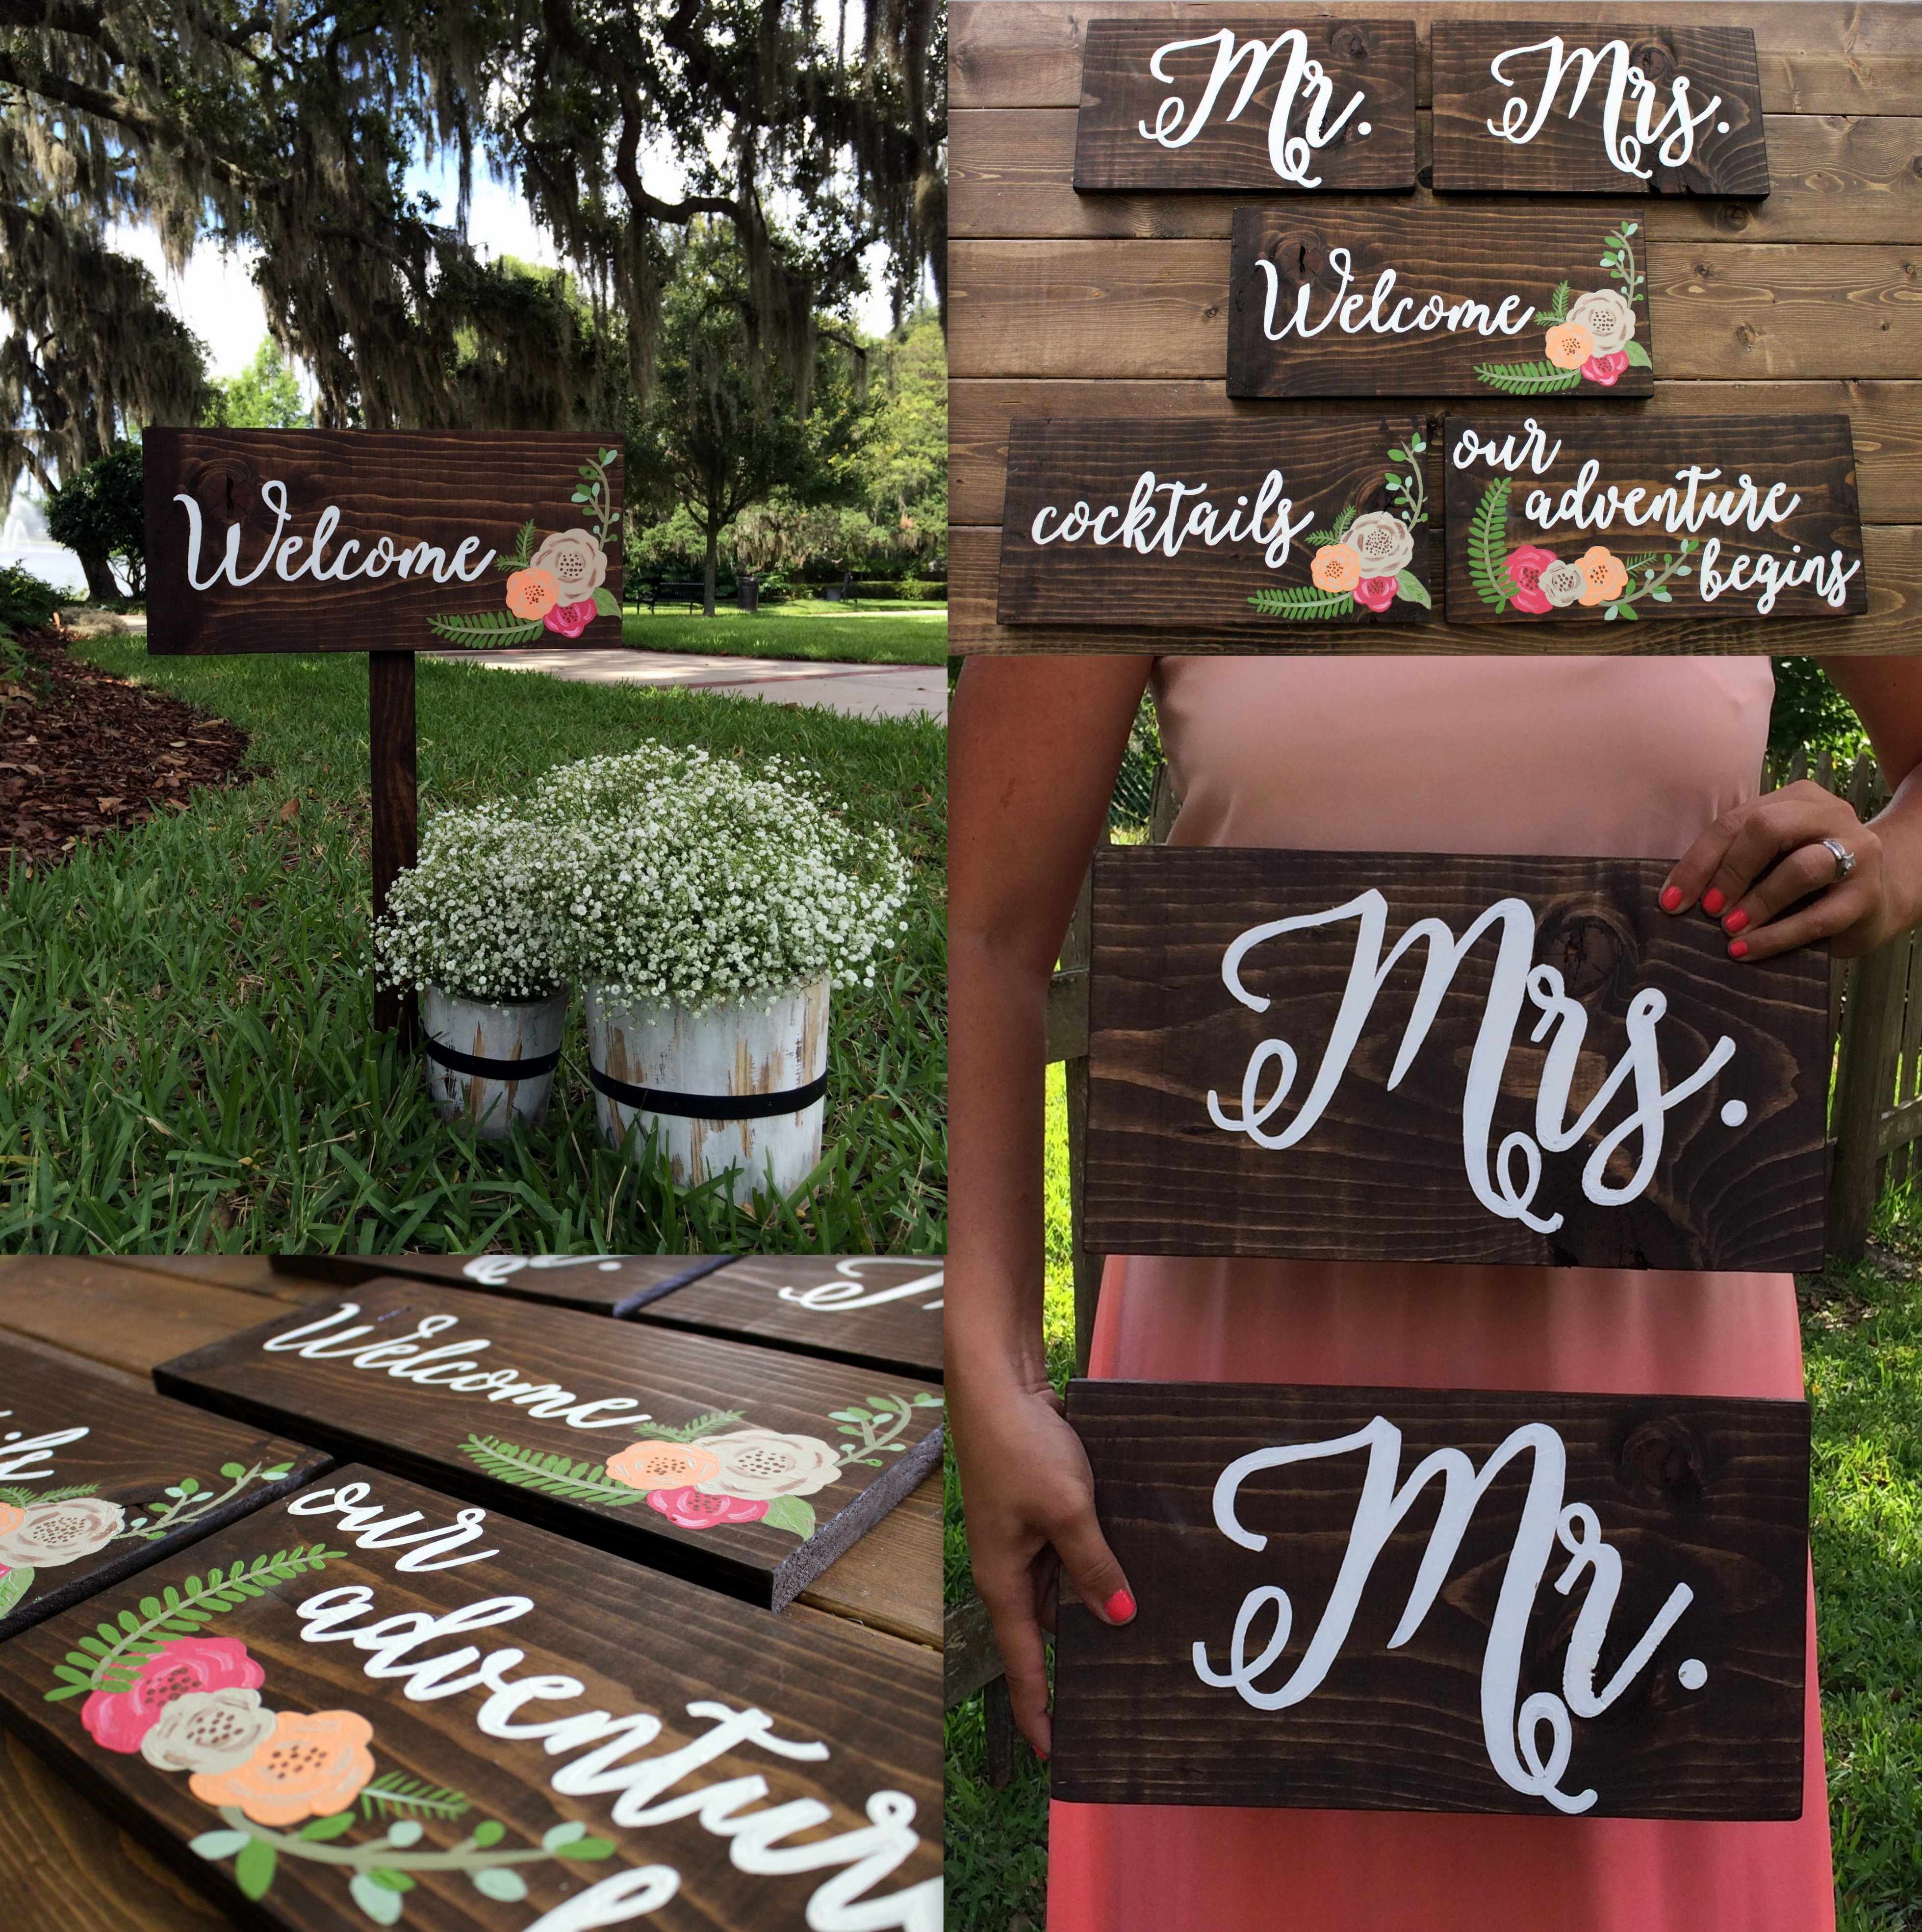 Best ideas about DIY Wedding Signage . Save or Pin DIY Calligraphy Wedding Signs Now.